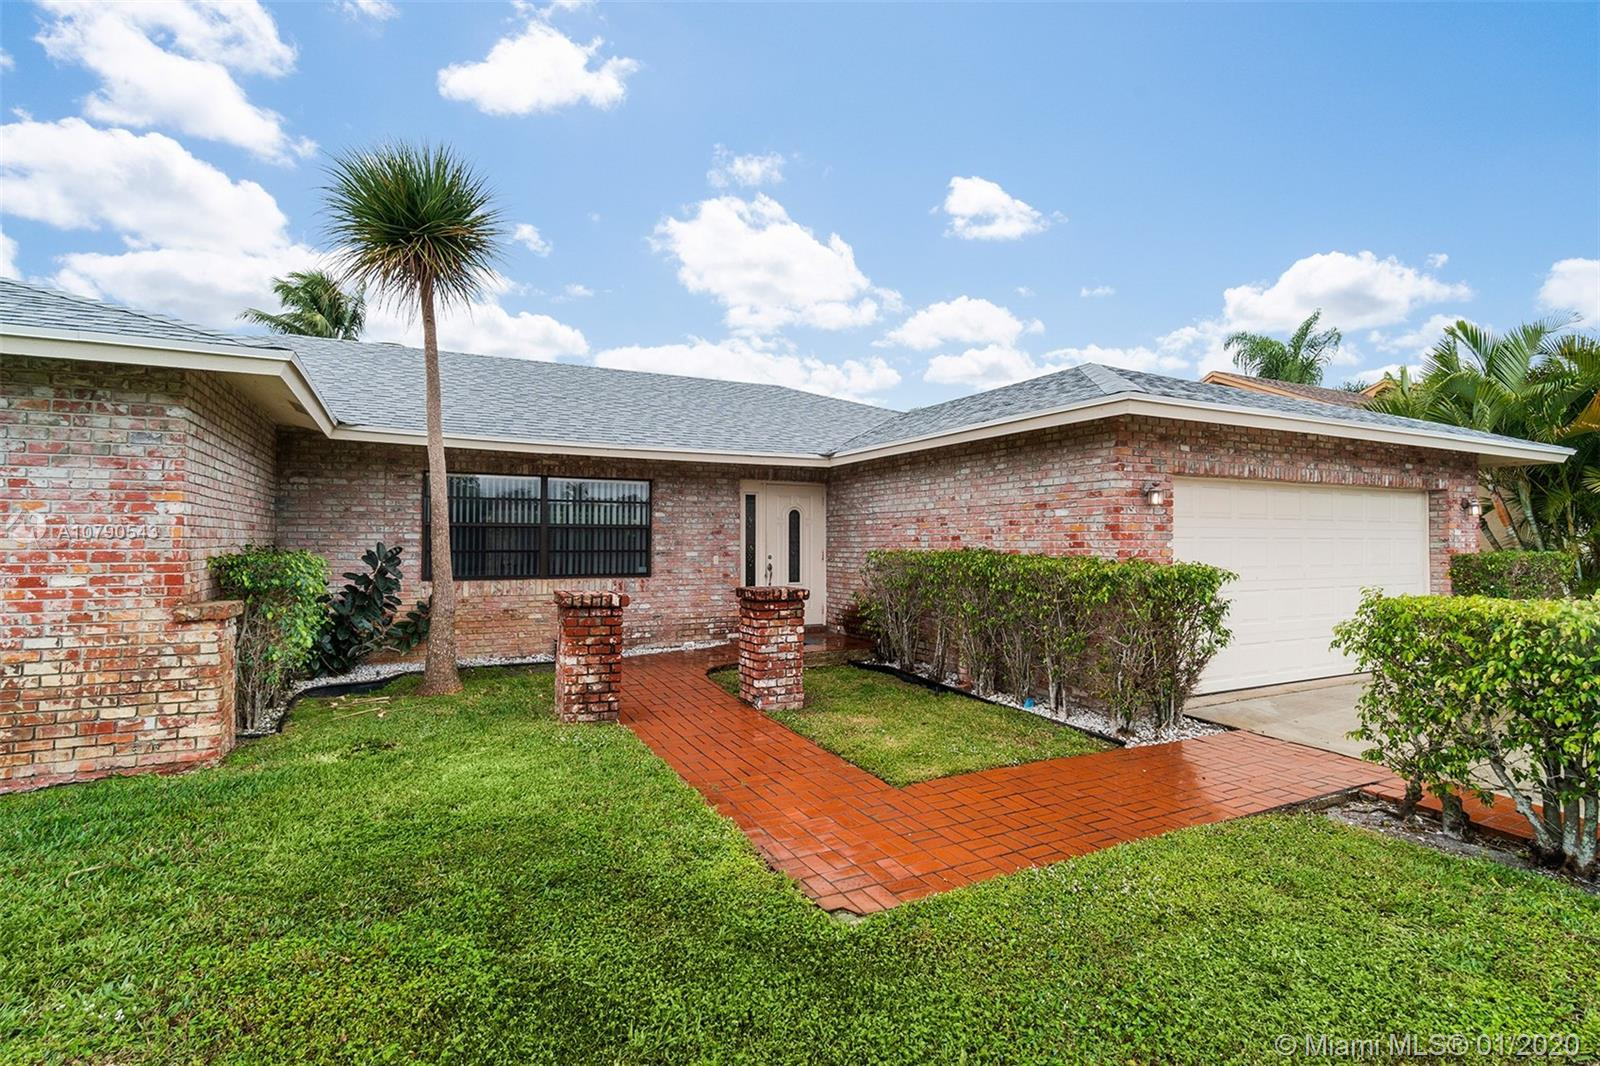 Location! Location Beautiful 4/2 Home with screened enclosed Pool, 2 Car garage, open floor plan, Up